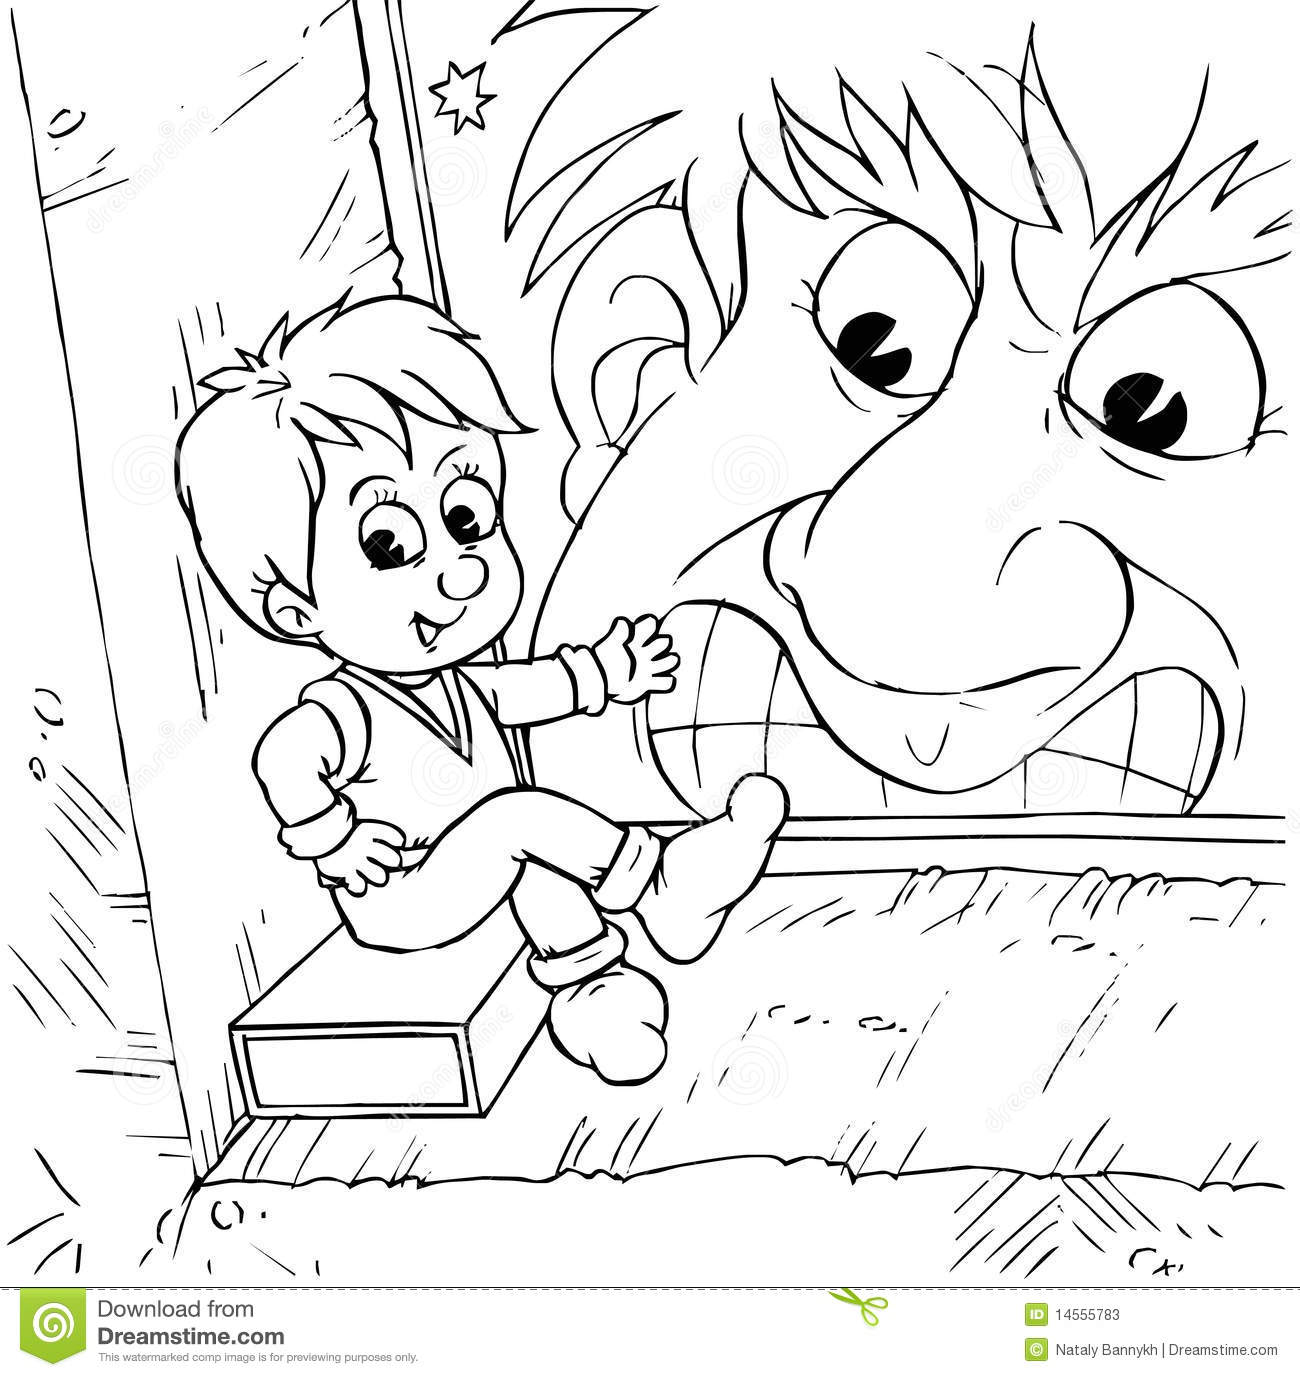 tom thumb coloring pages - photo#16